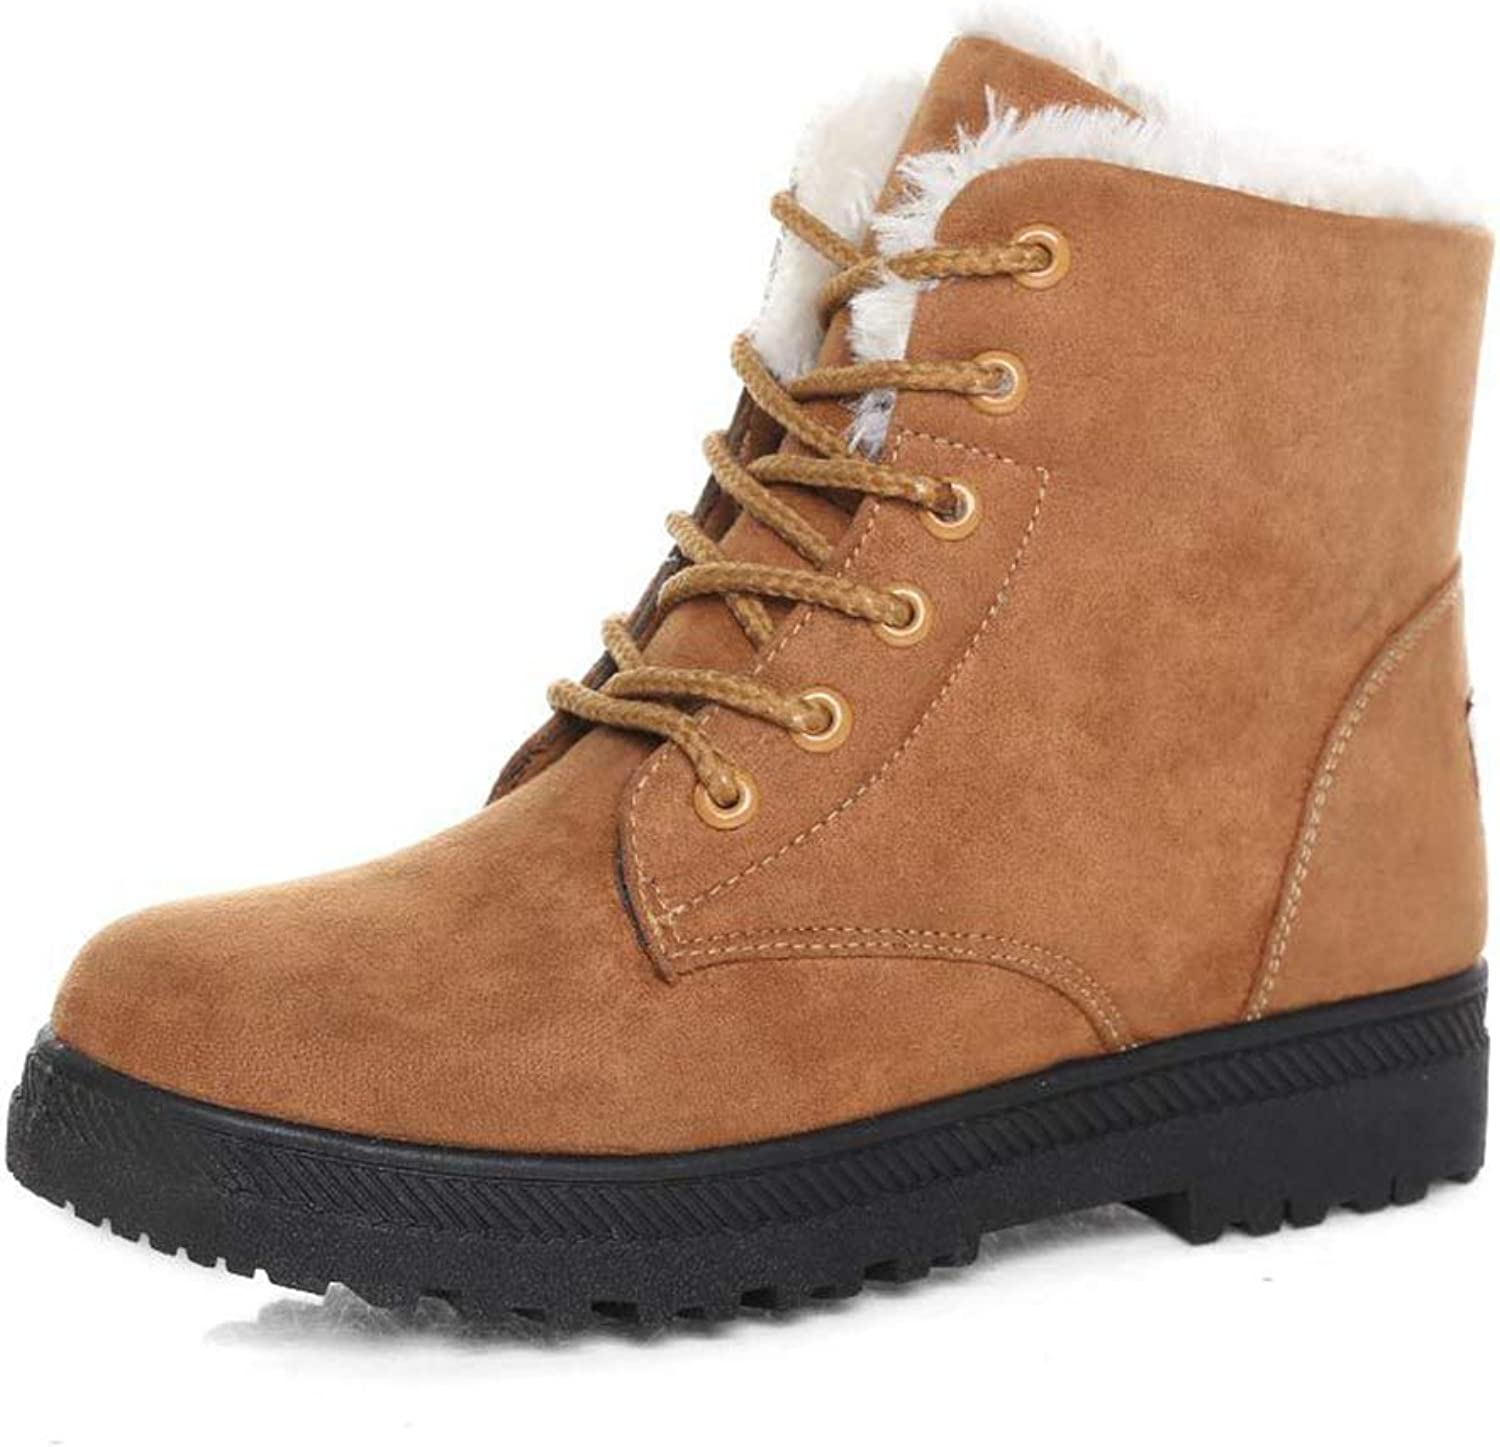 Zarbrina Womens Fleece Lined Ankle Boots Ladies Fashion Round Toe Flock Short Plush Lace Up Cross Tied Warm Snow shoes